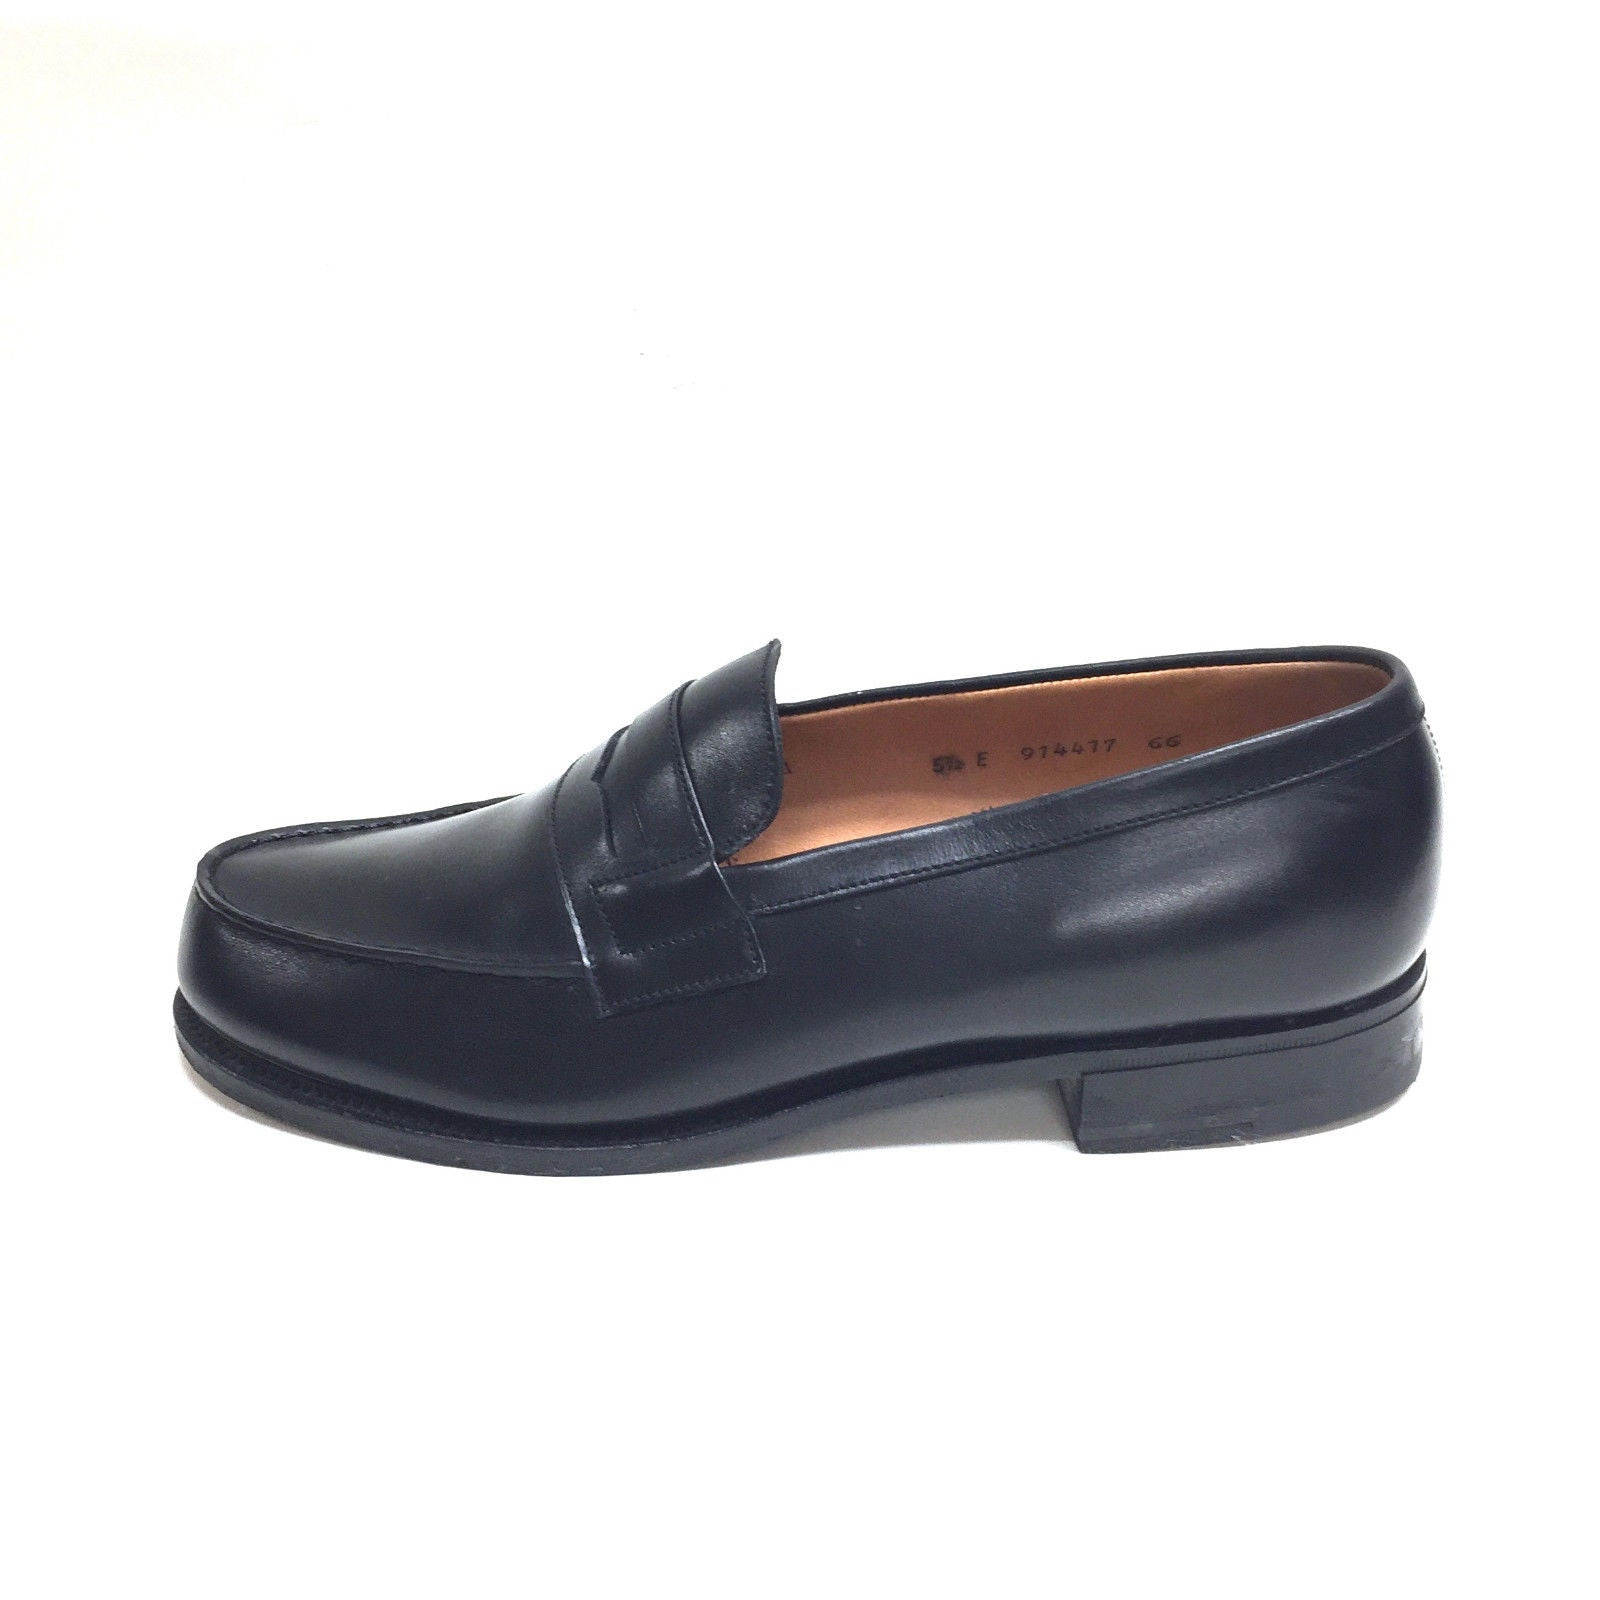 J. M. WESTON Black Leather Classic Penny Loafers Shoes ...